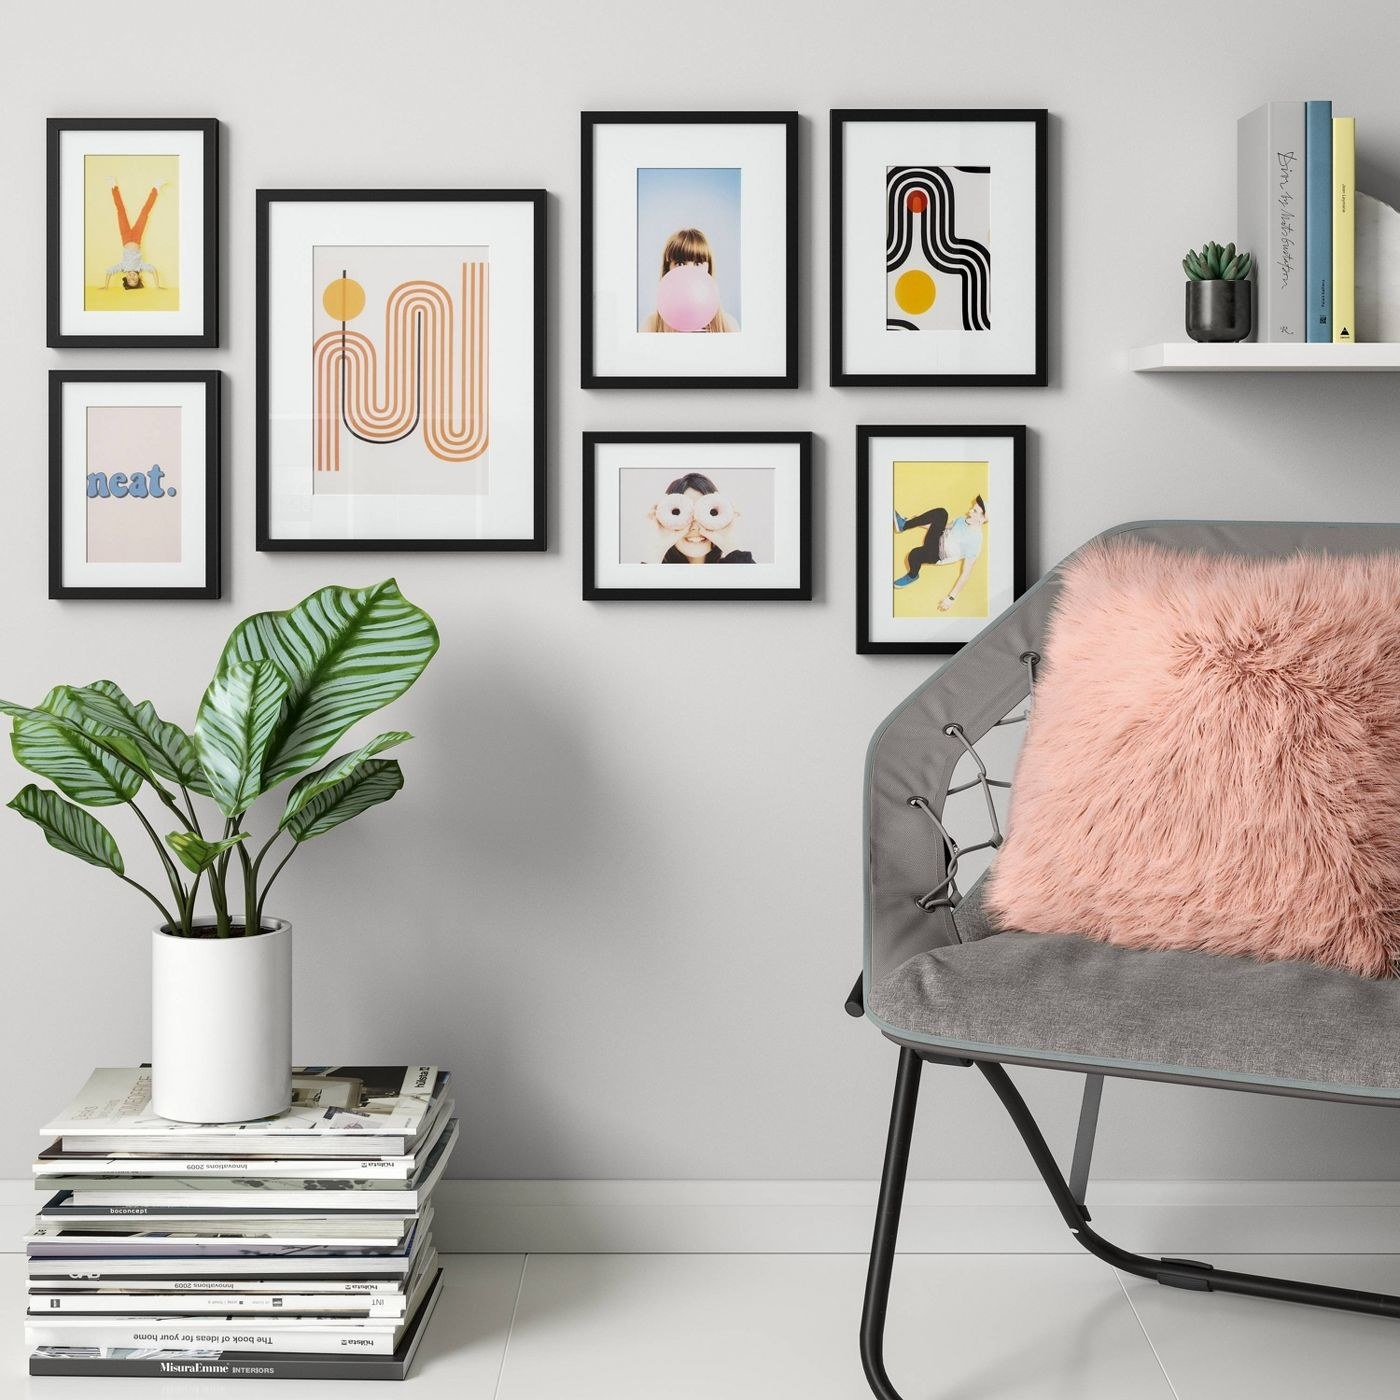 seven black frames hanging on the wall with photos and prints in them